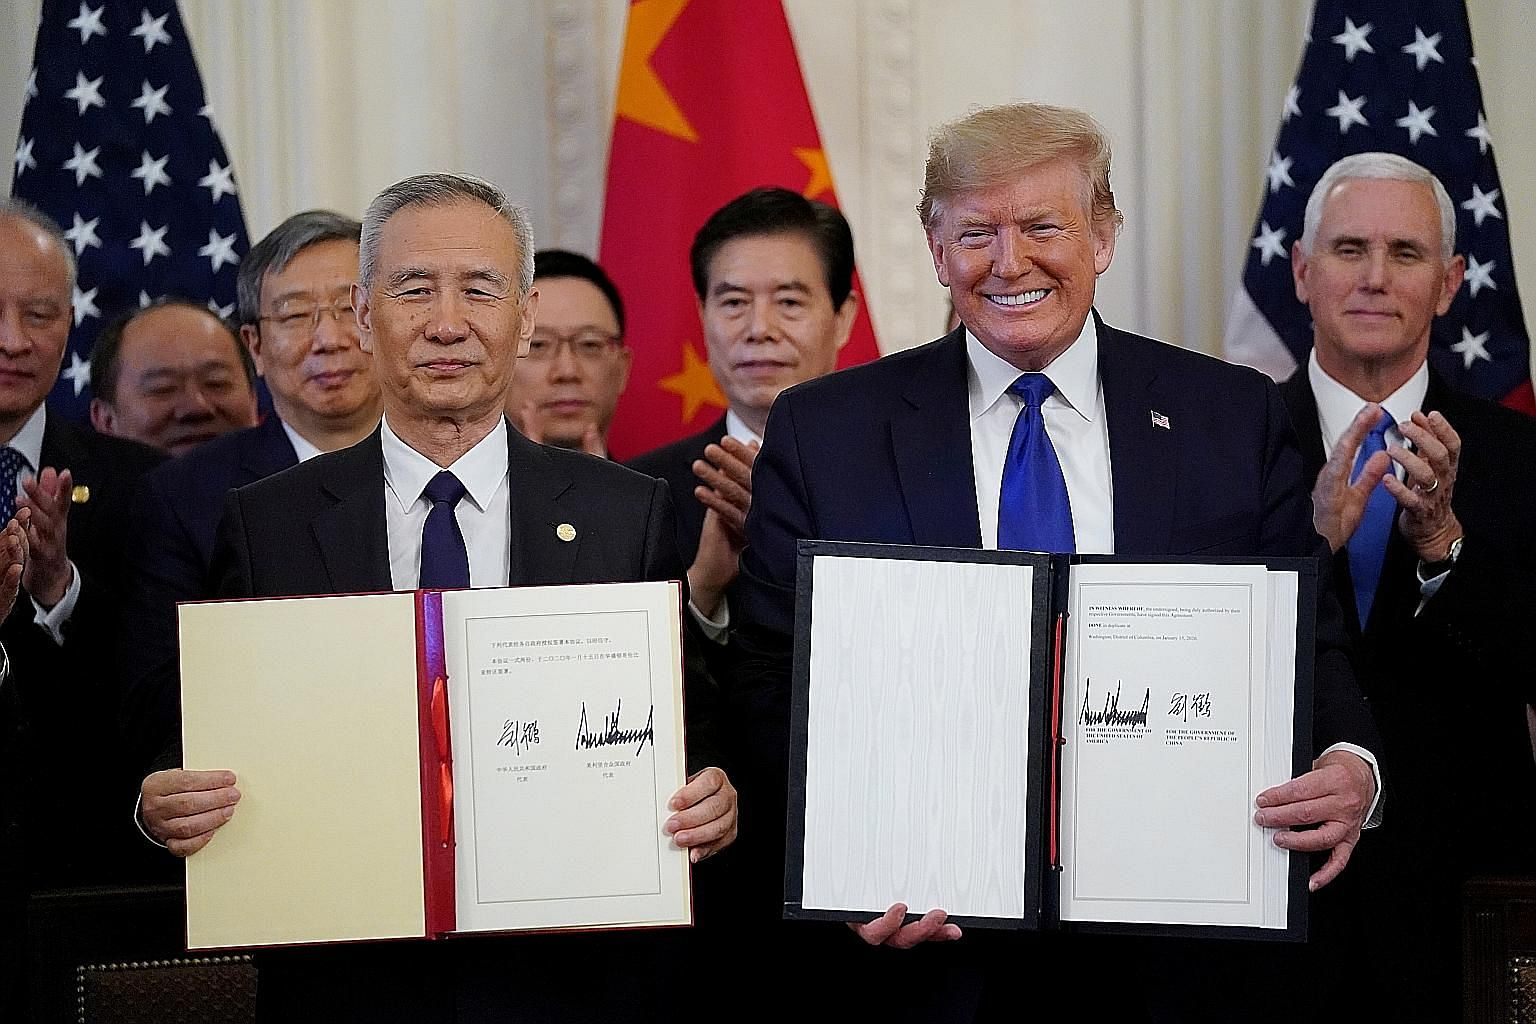 Chinese Vice-Premier Liu He and US President Donald Trump after signing phase one of the trade deal between their countries in Washington on Wednesday. The deal had China committing to buy another US$200 billion (S$269 billion) of US goods and servic